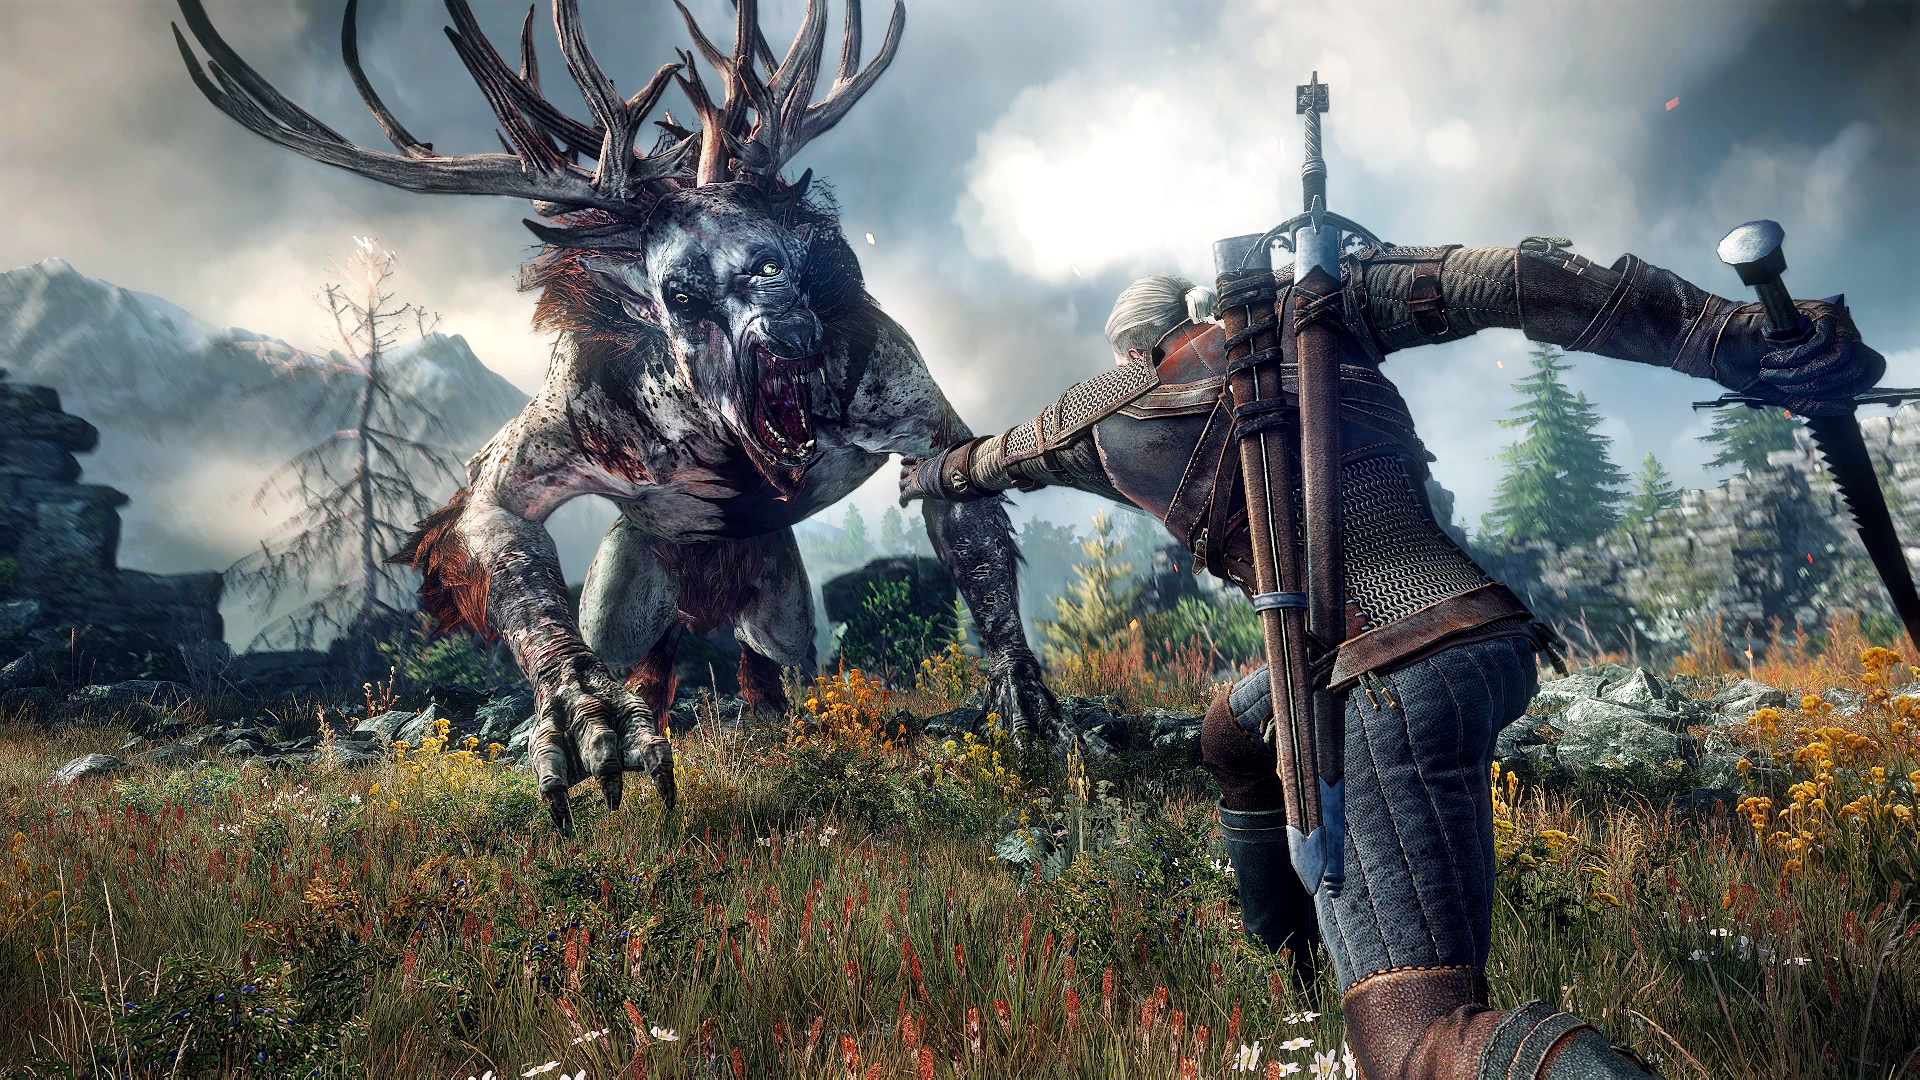 The Witcher 3: Wild Hunt RPG Review